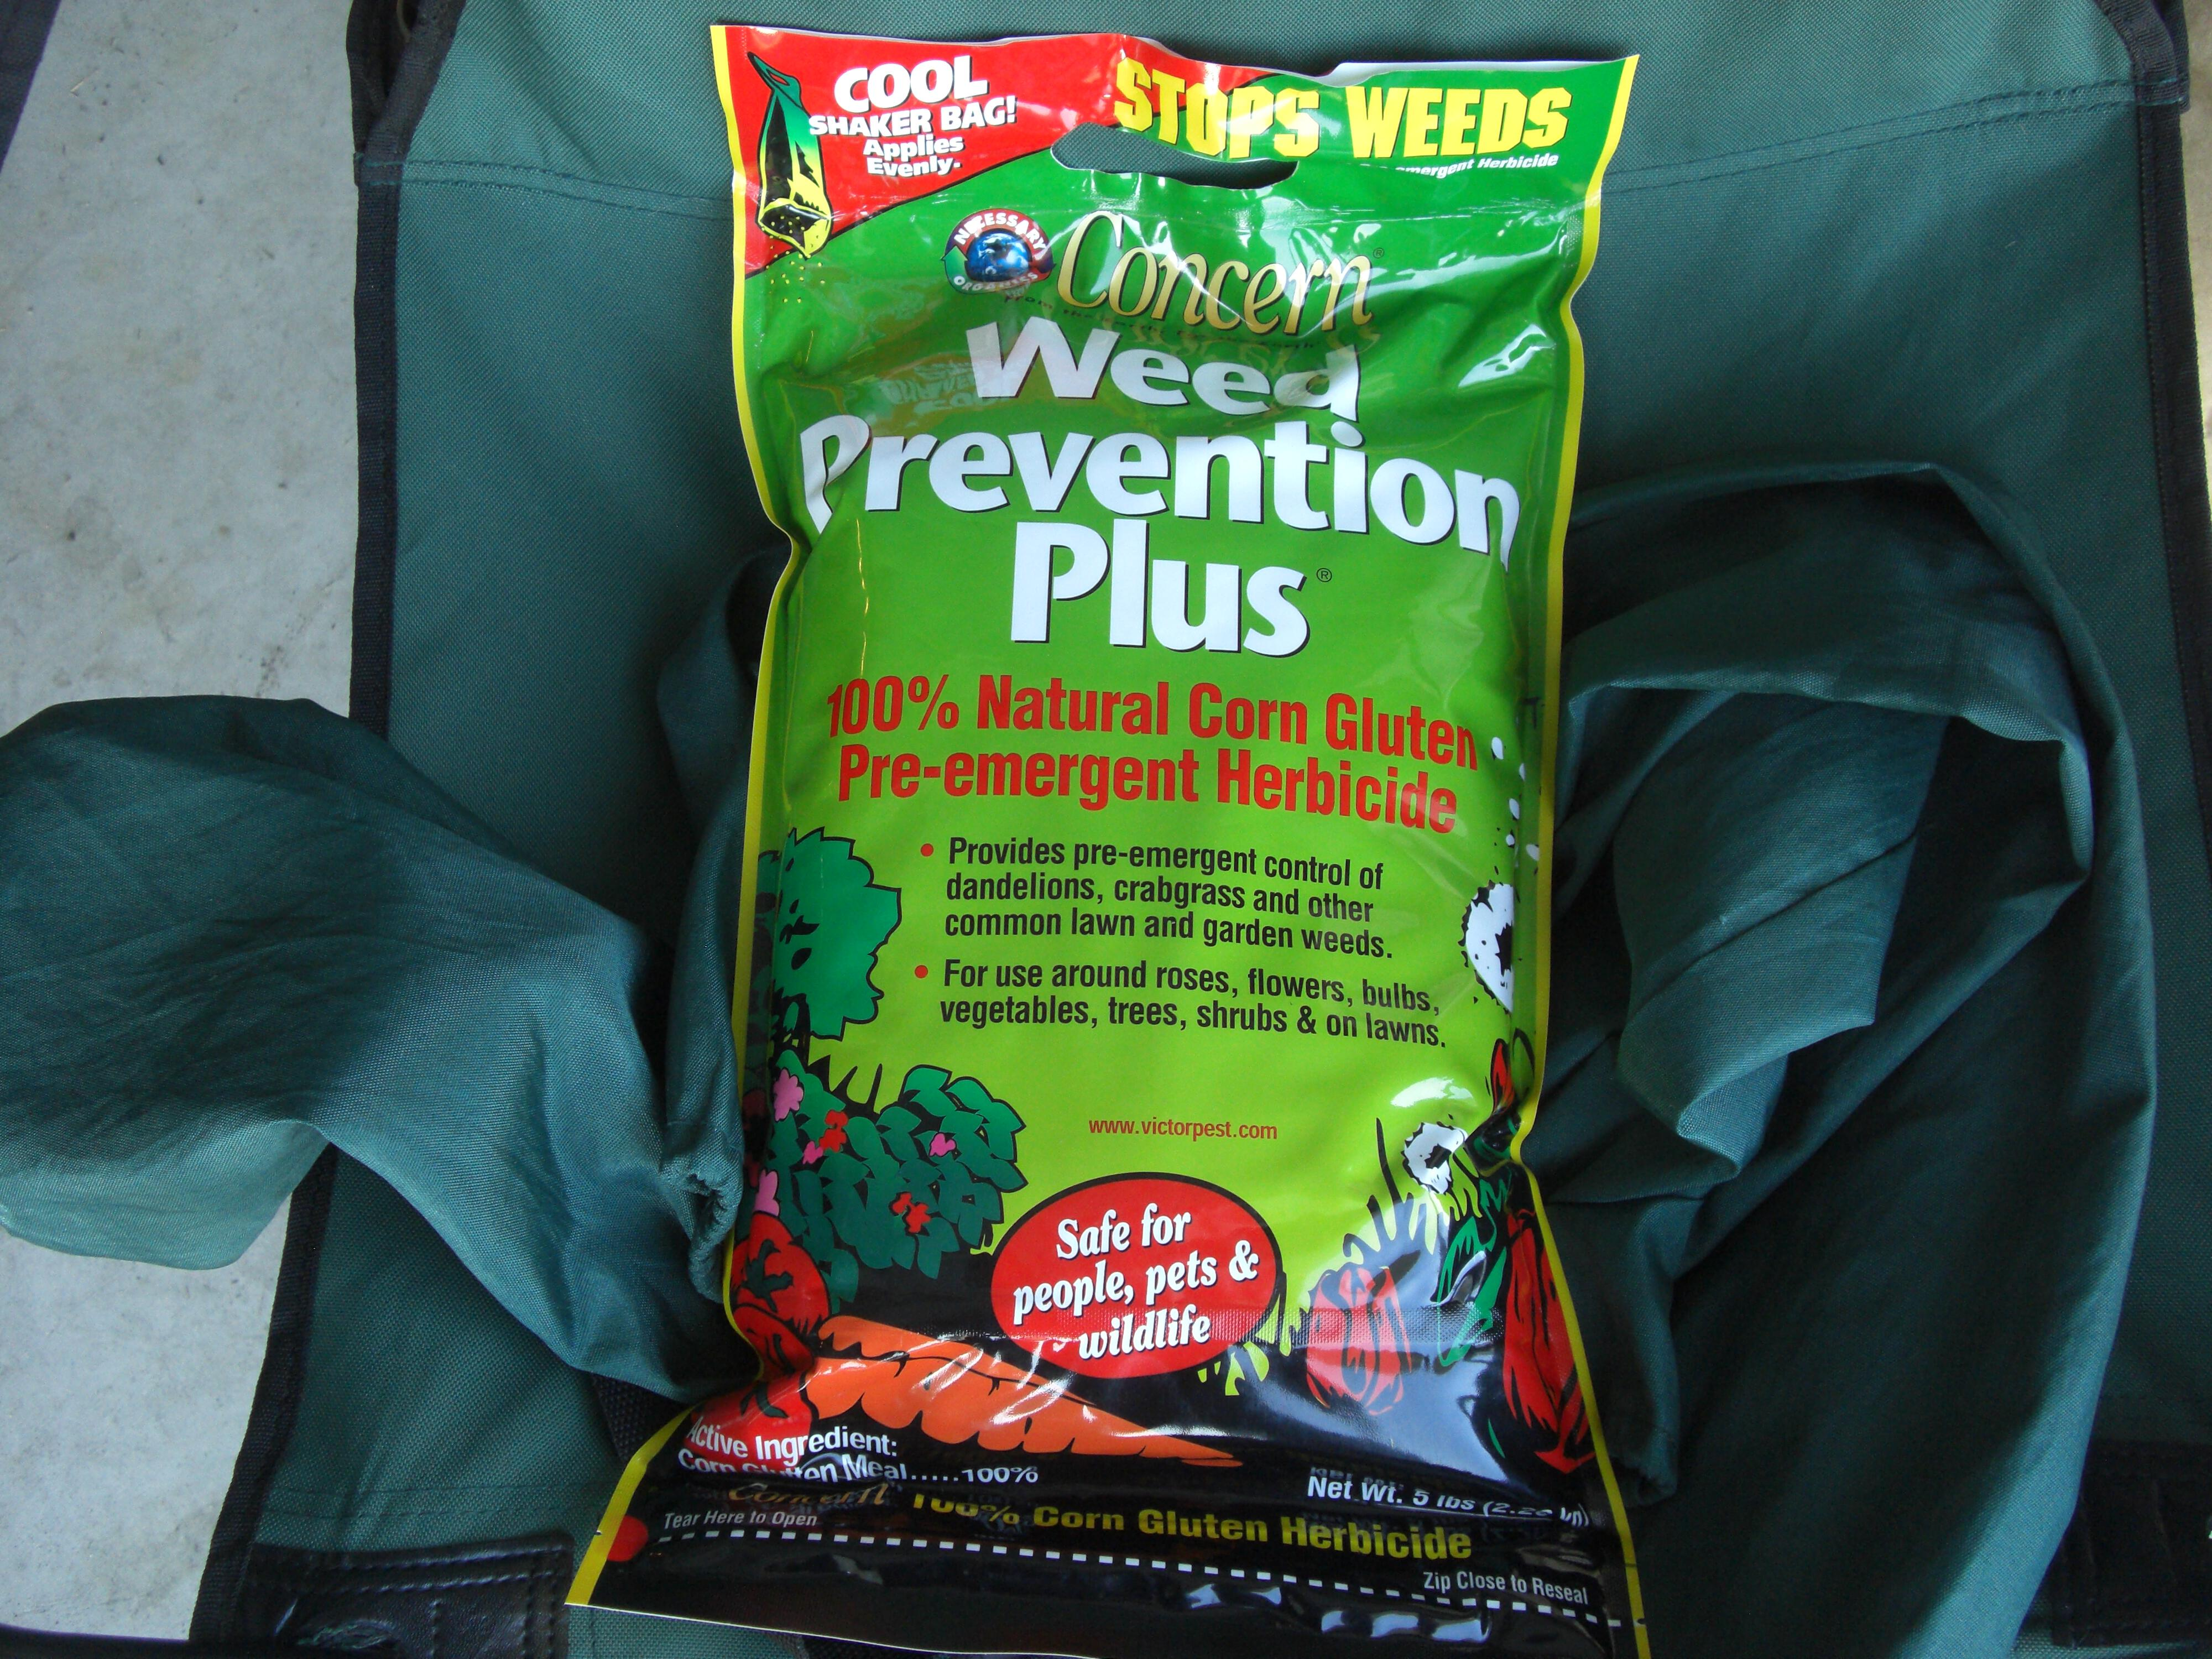 Concern Weed Prevention Plus 100% Natural Corn Gluten